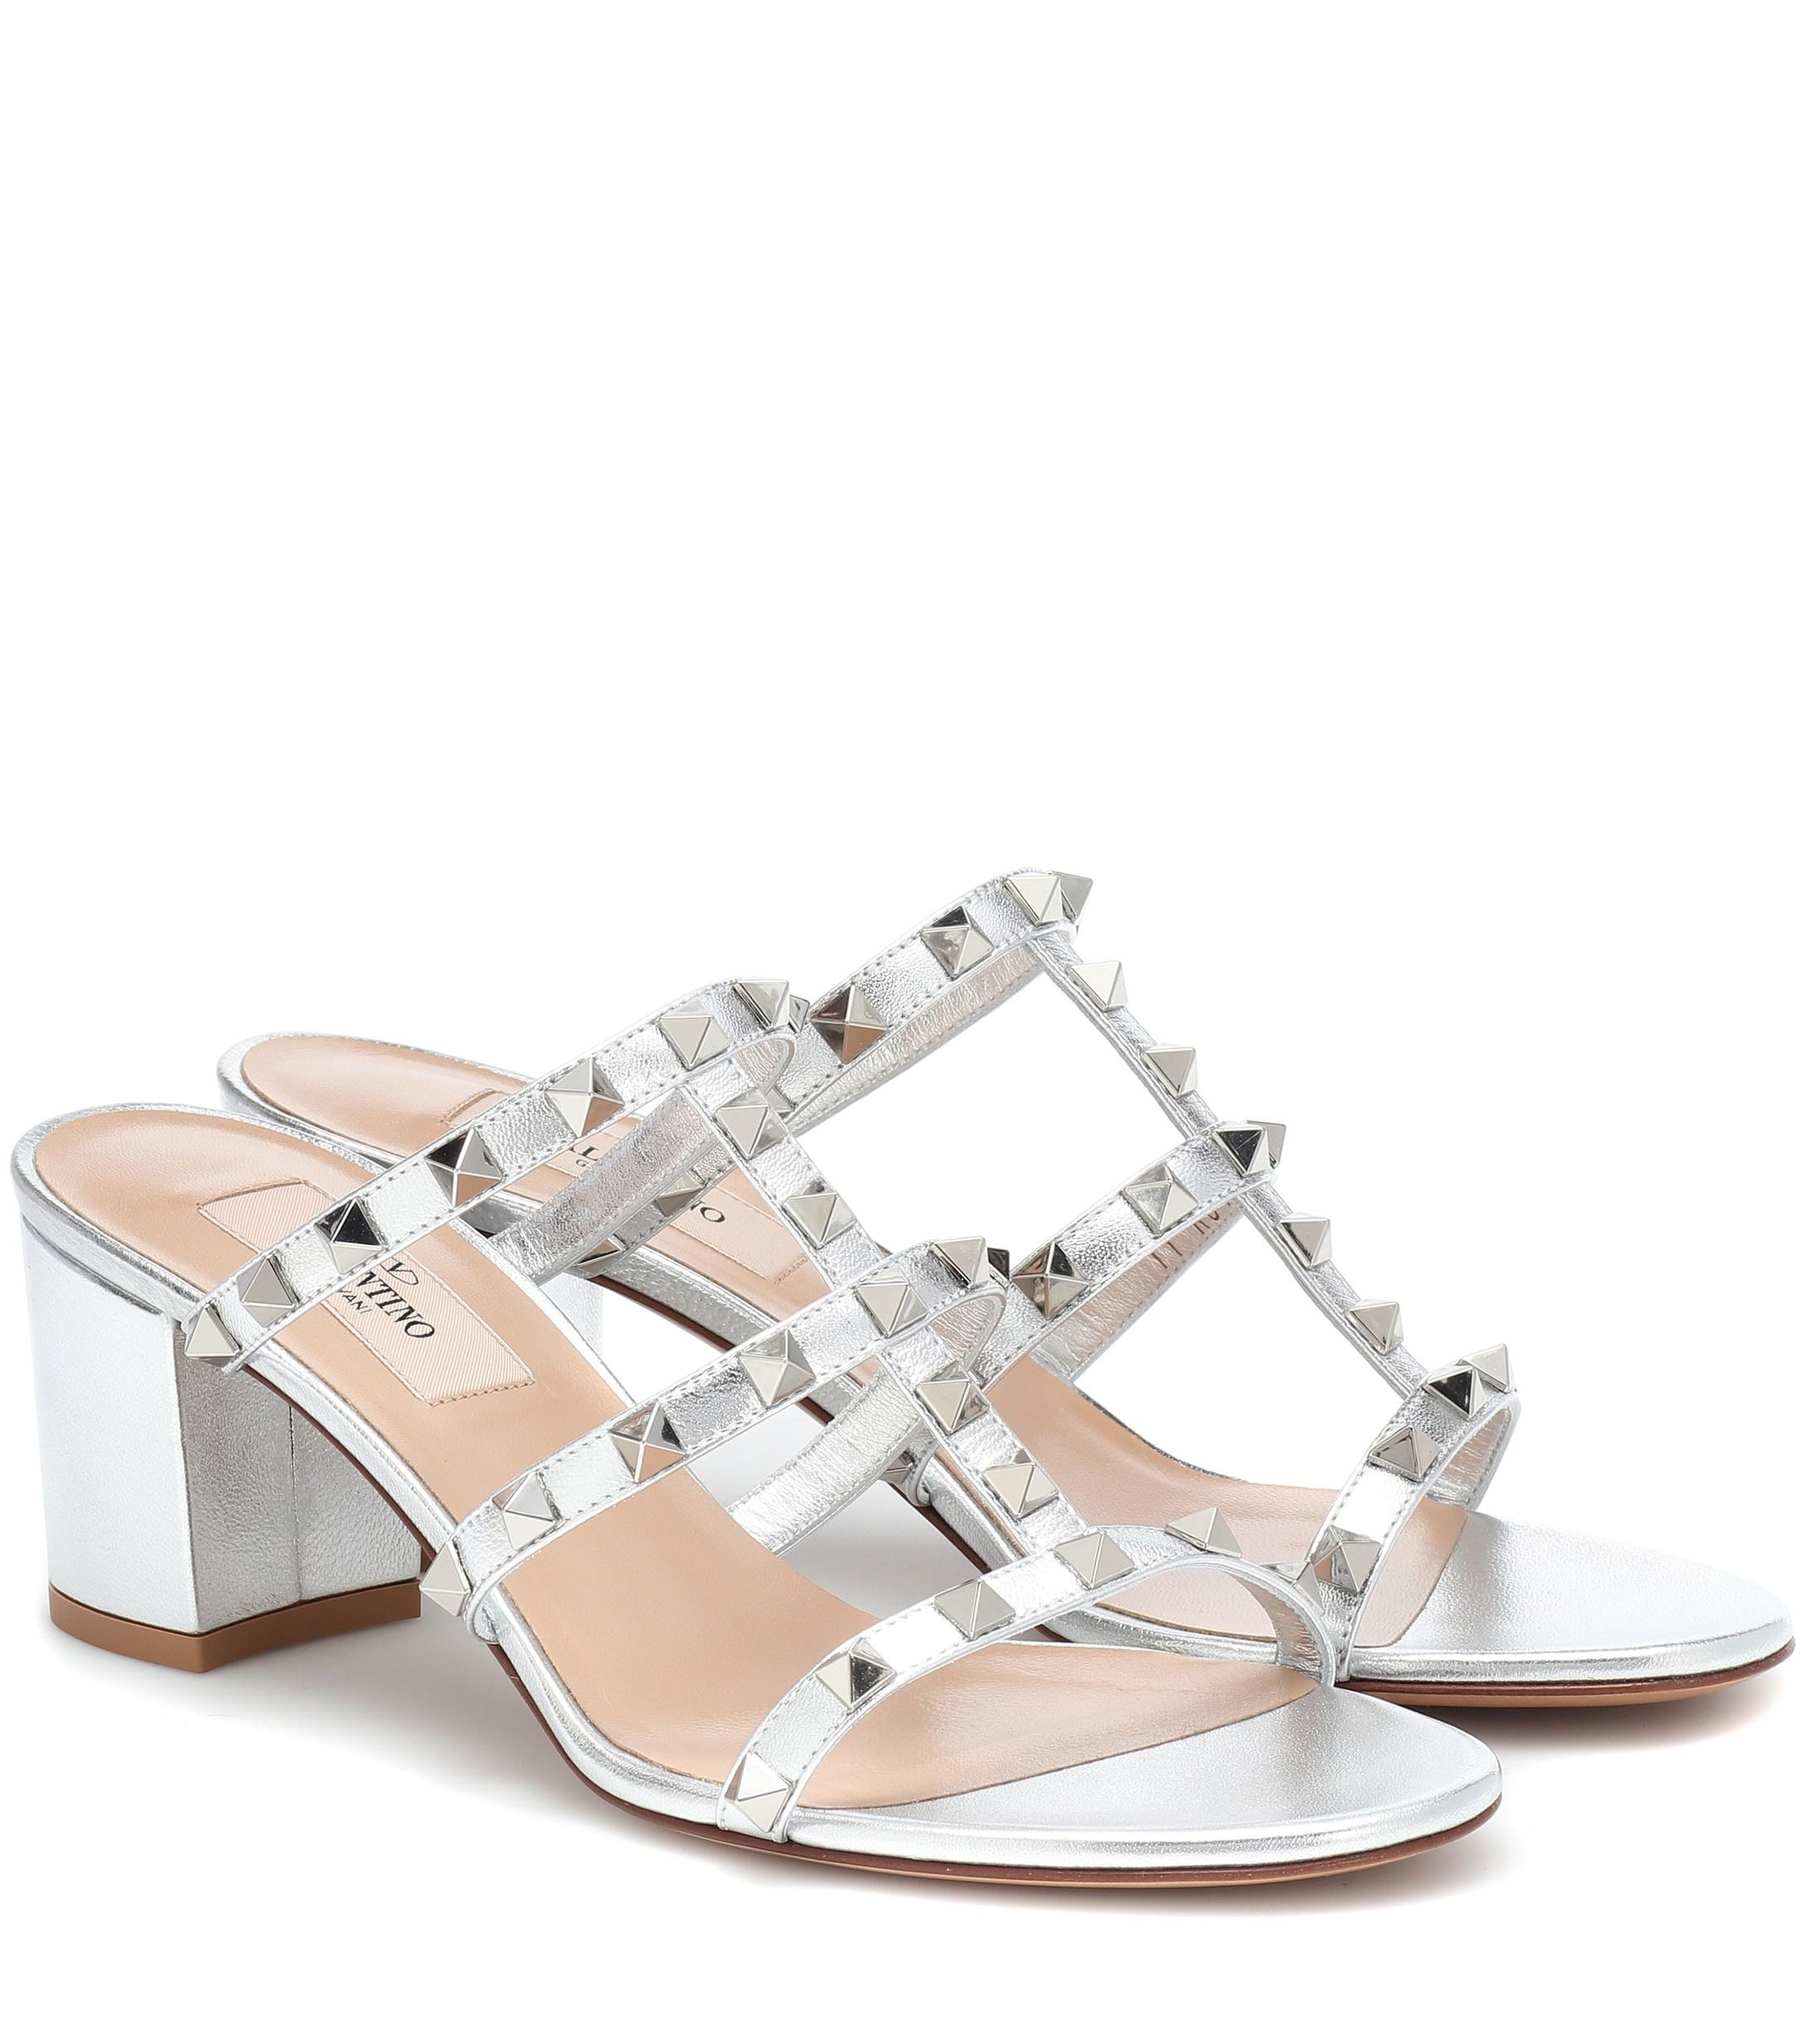 49345f0c5e2 Lyst - Valentino Rockstud Spike Leather Sandals in Metallic